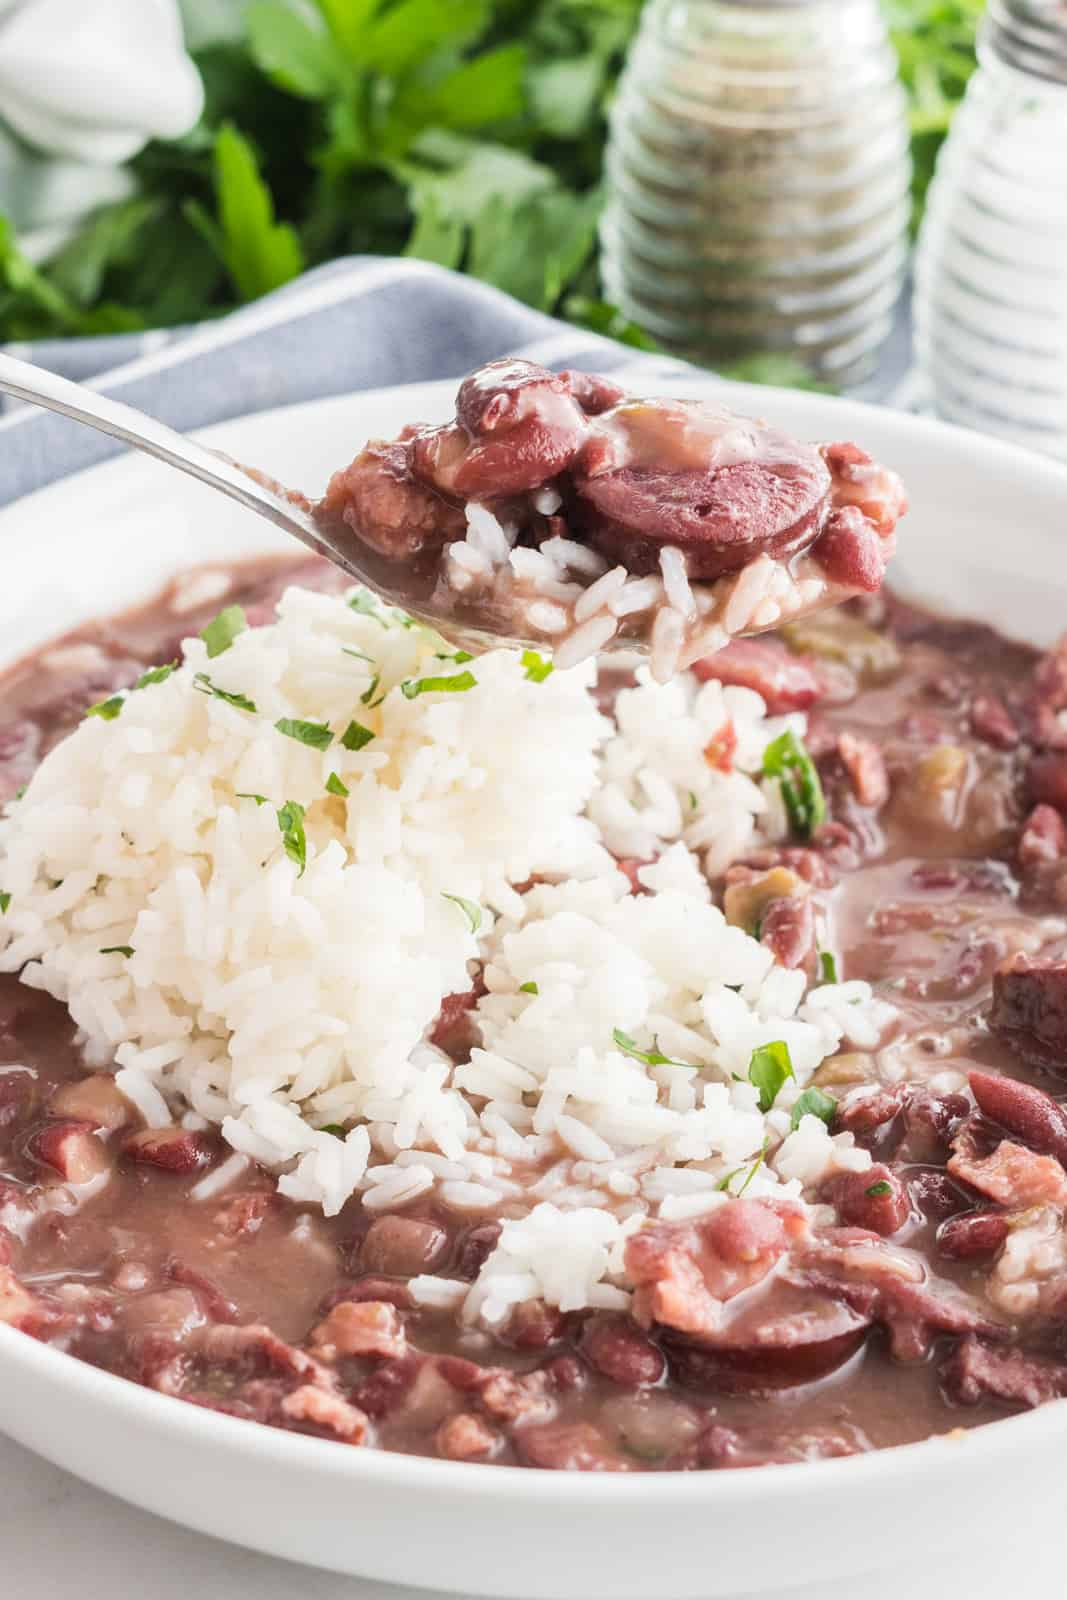 Spoon scooping up the slow cooker red beans and rice